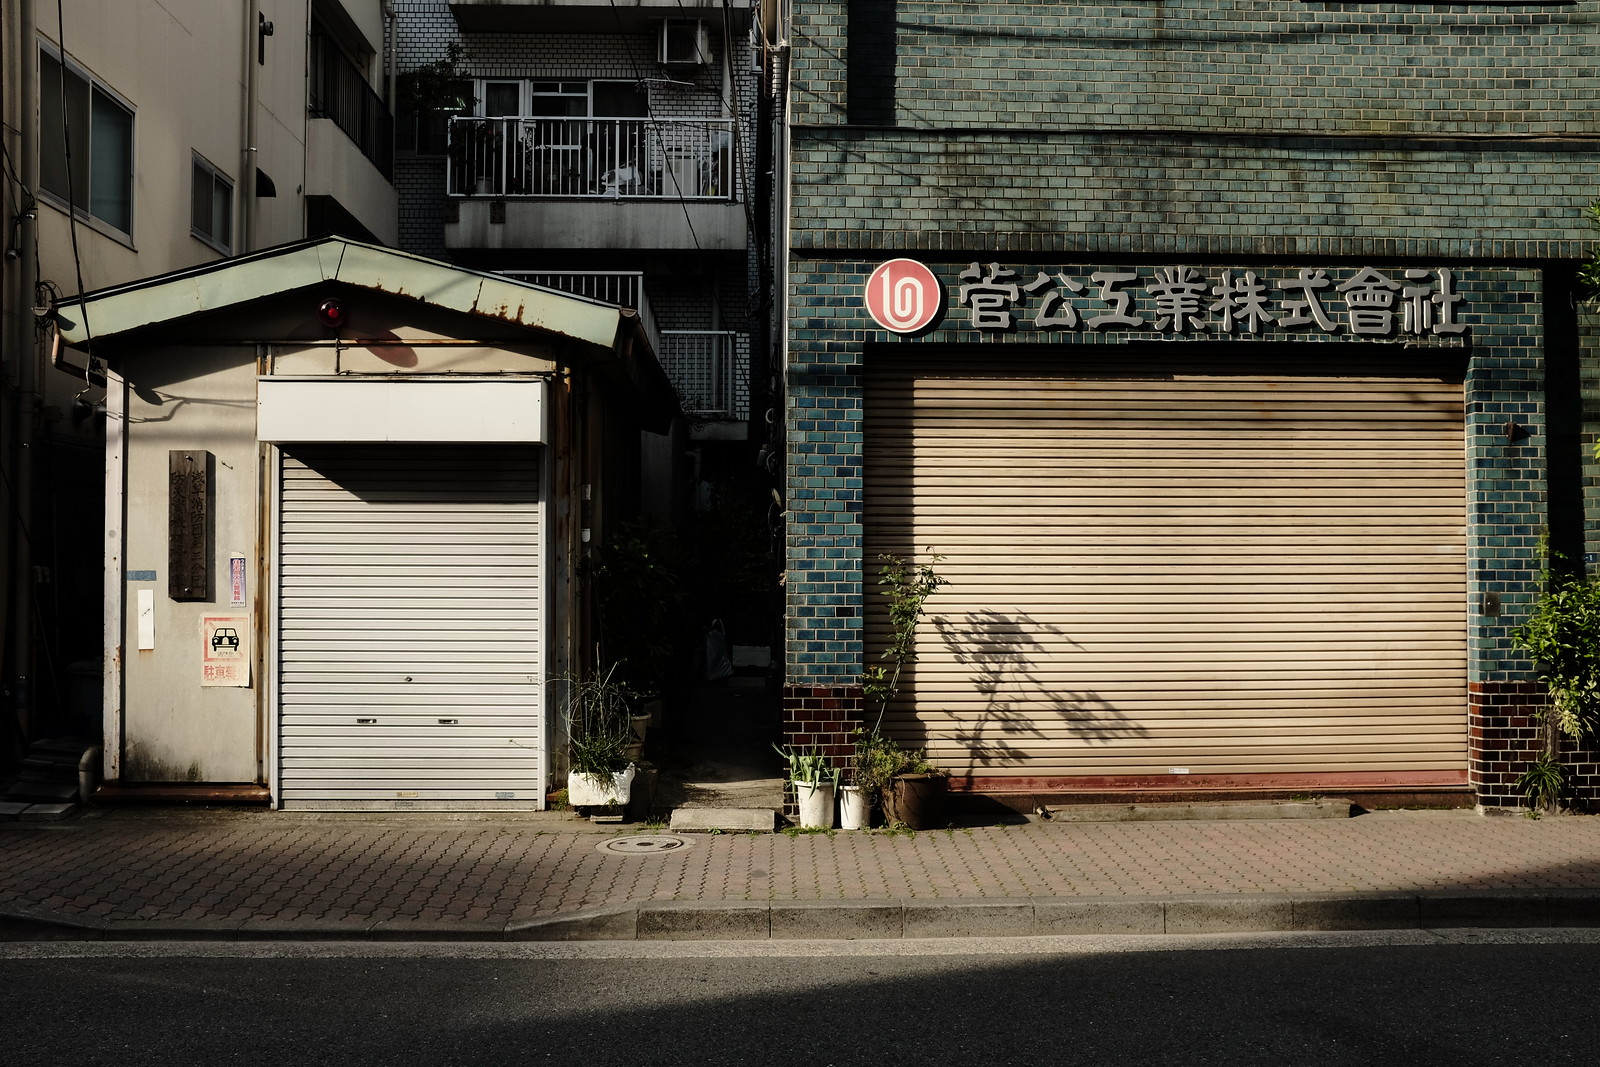 The Kurame to Asakusa photo by FUJIFILM X100S.